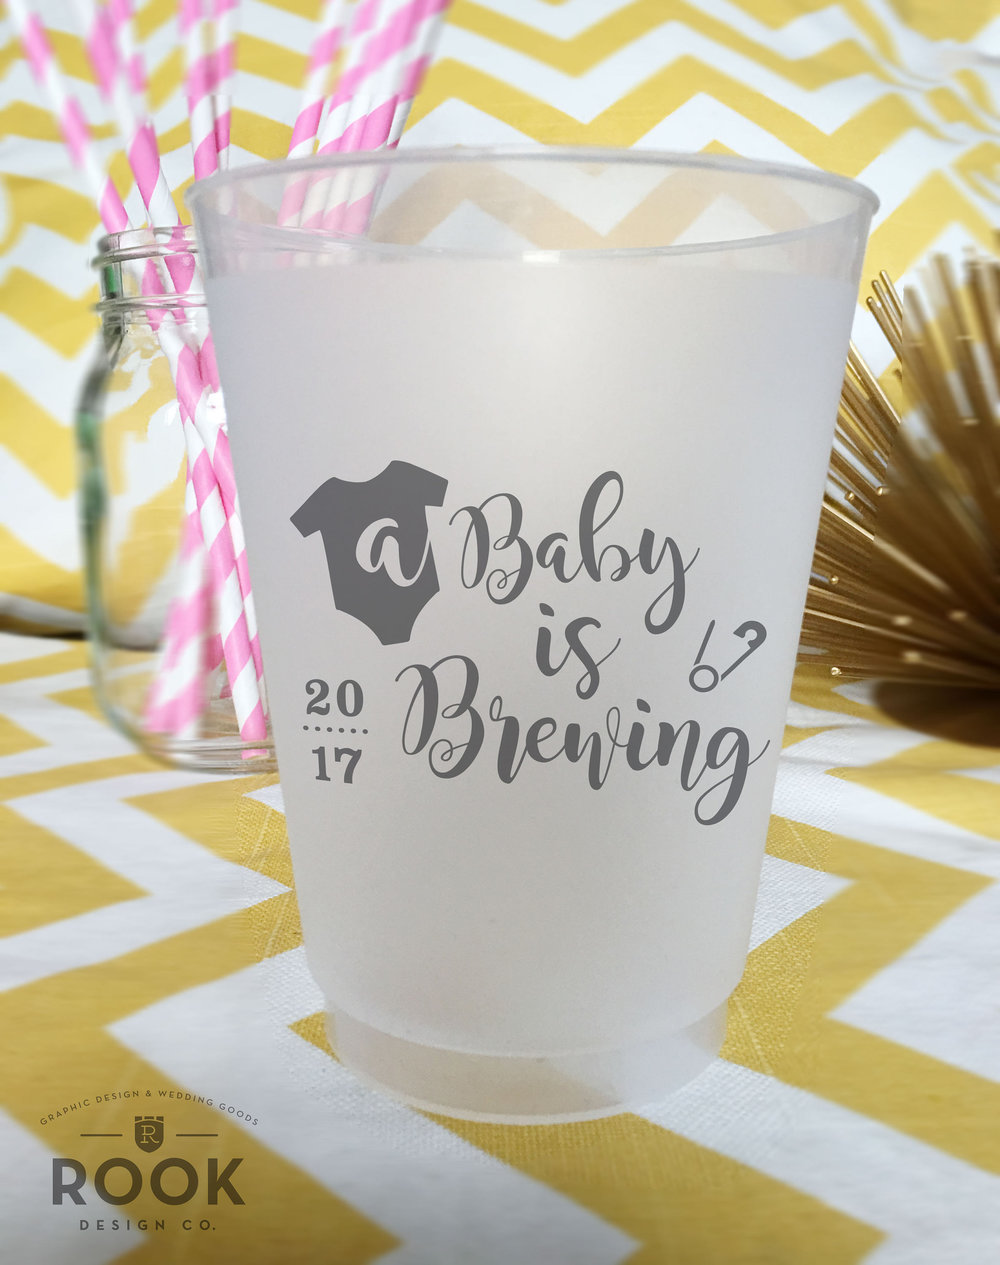 Weekly Recap - New Baby Shower designs in the shop — Rook Design Co.